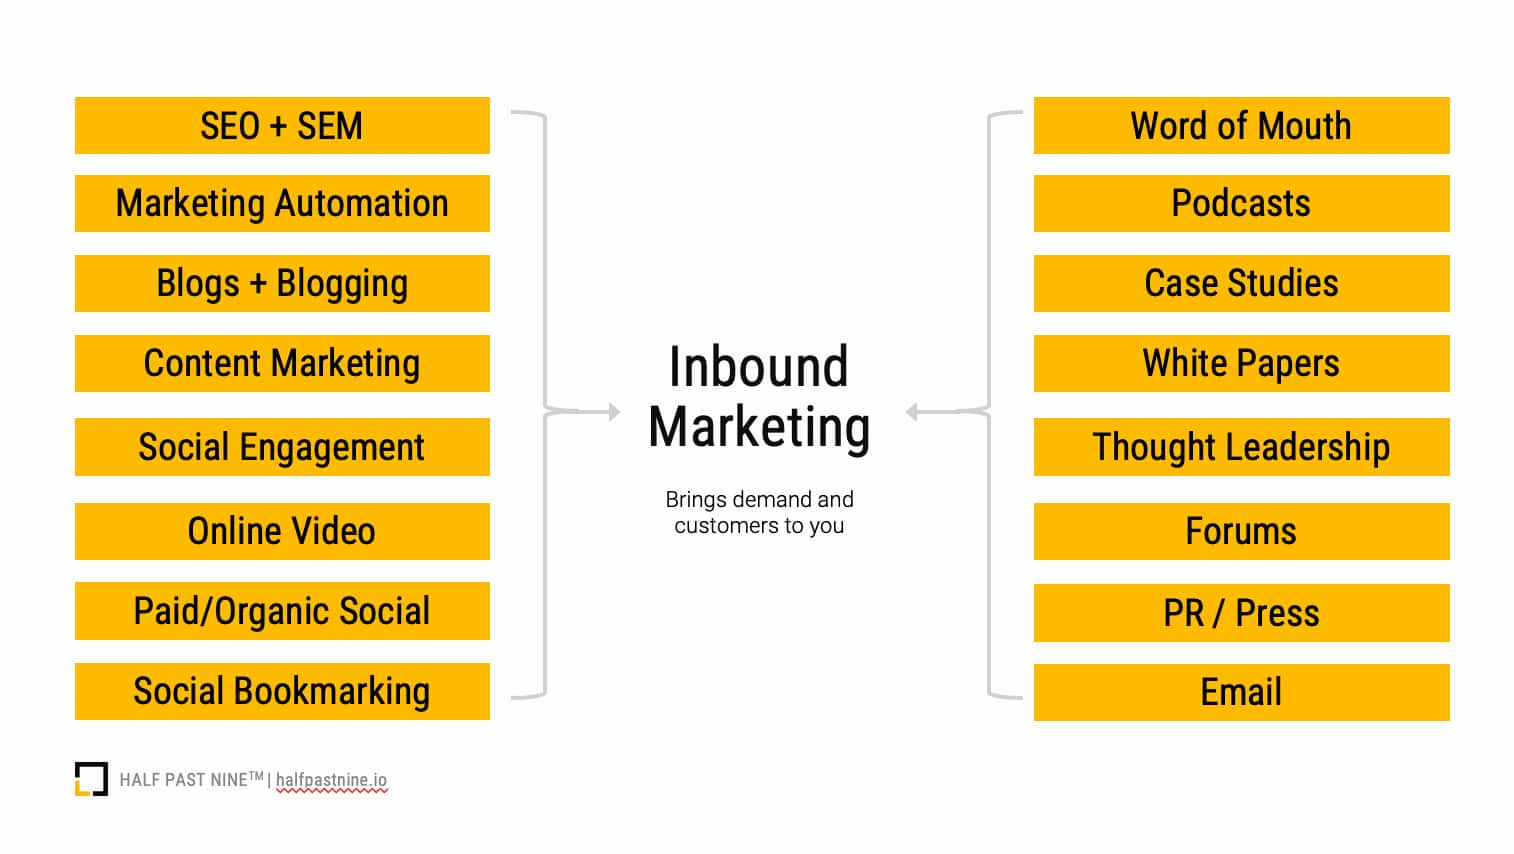 Inbound marketing examples and digital marketing channels that are considered inbound marketing